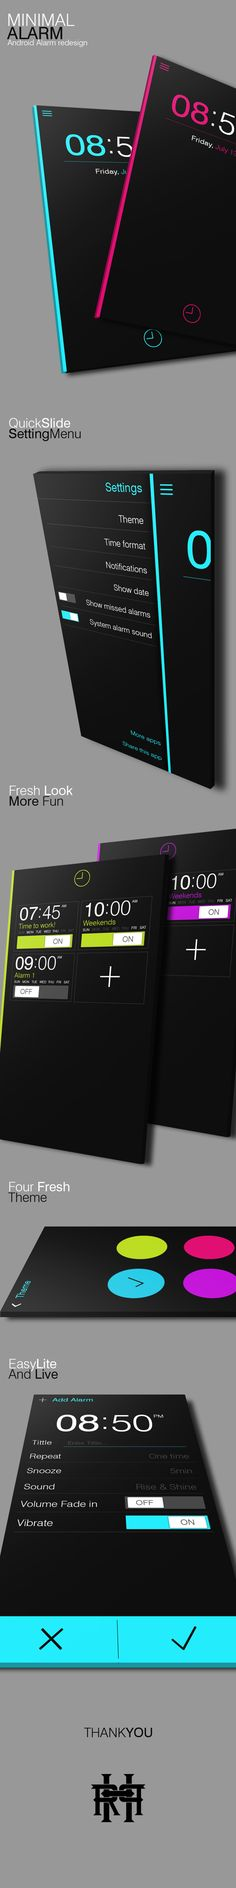 Minimal Alarm - Android Alarm Redesign on Behance